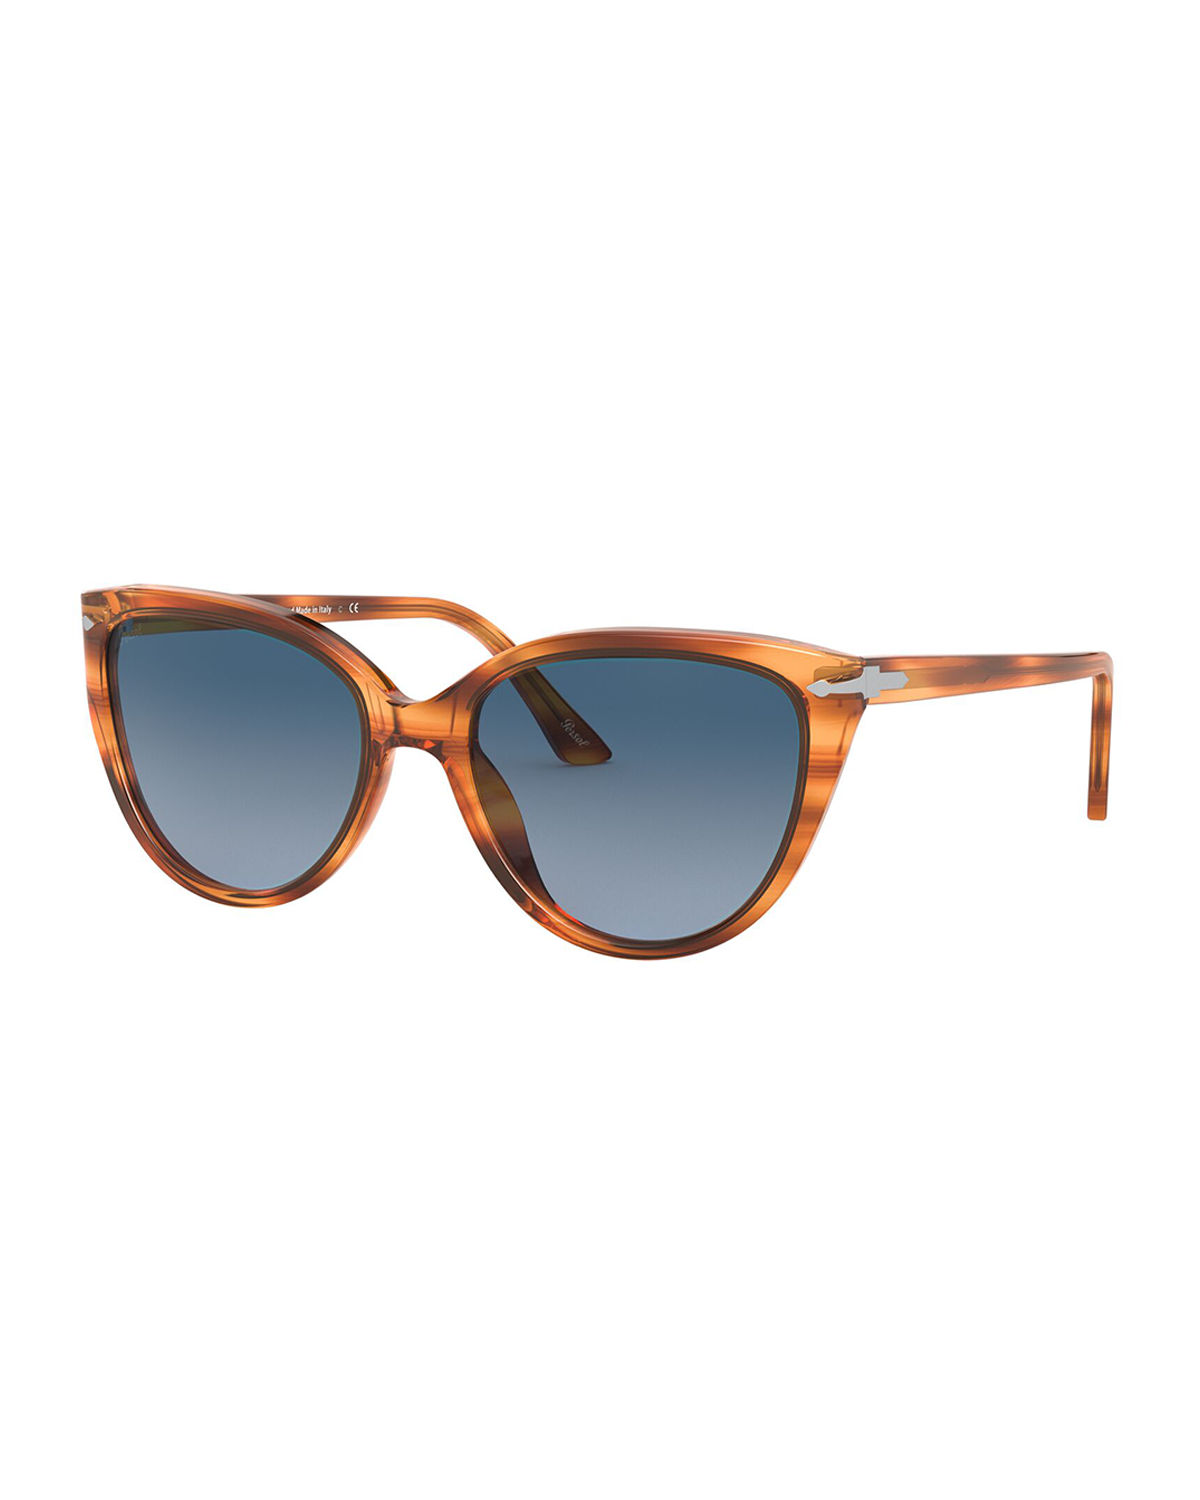 Persol OVERSIZED ACETATE CAT-EYE SUNGLASSES